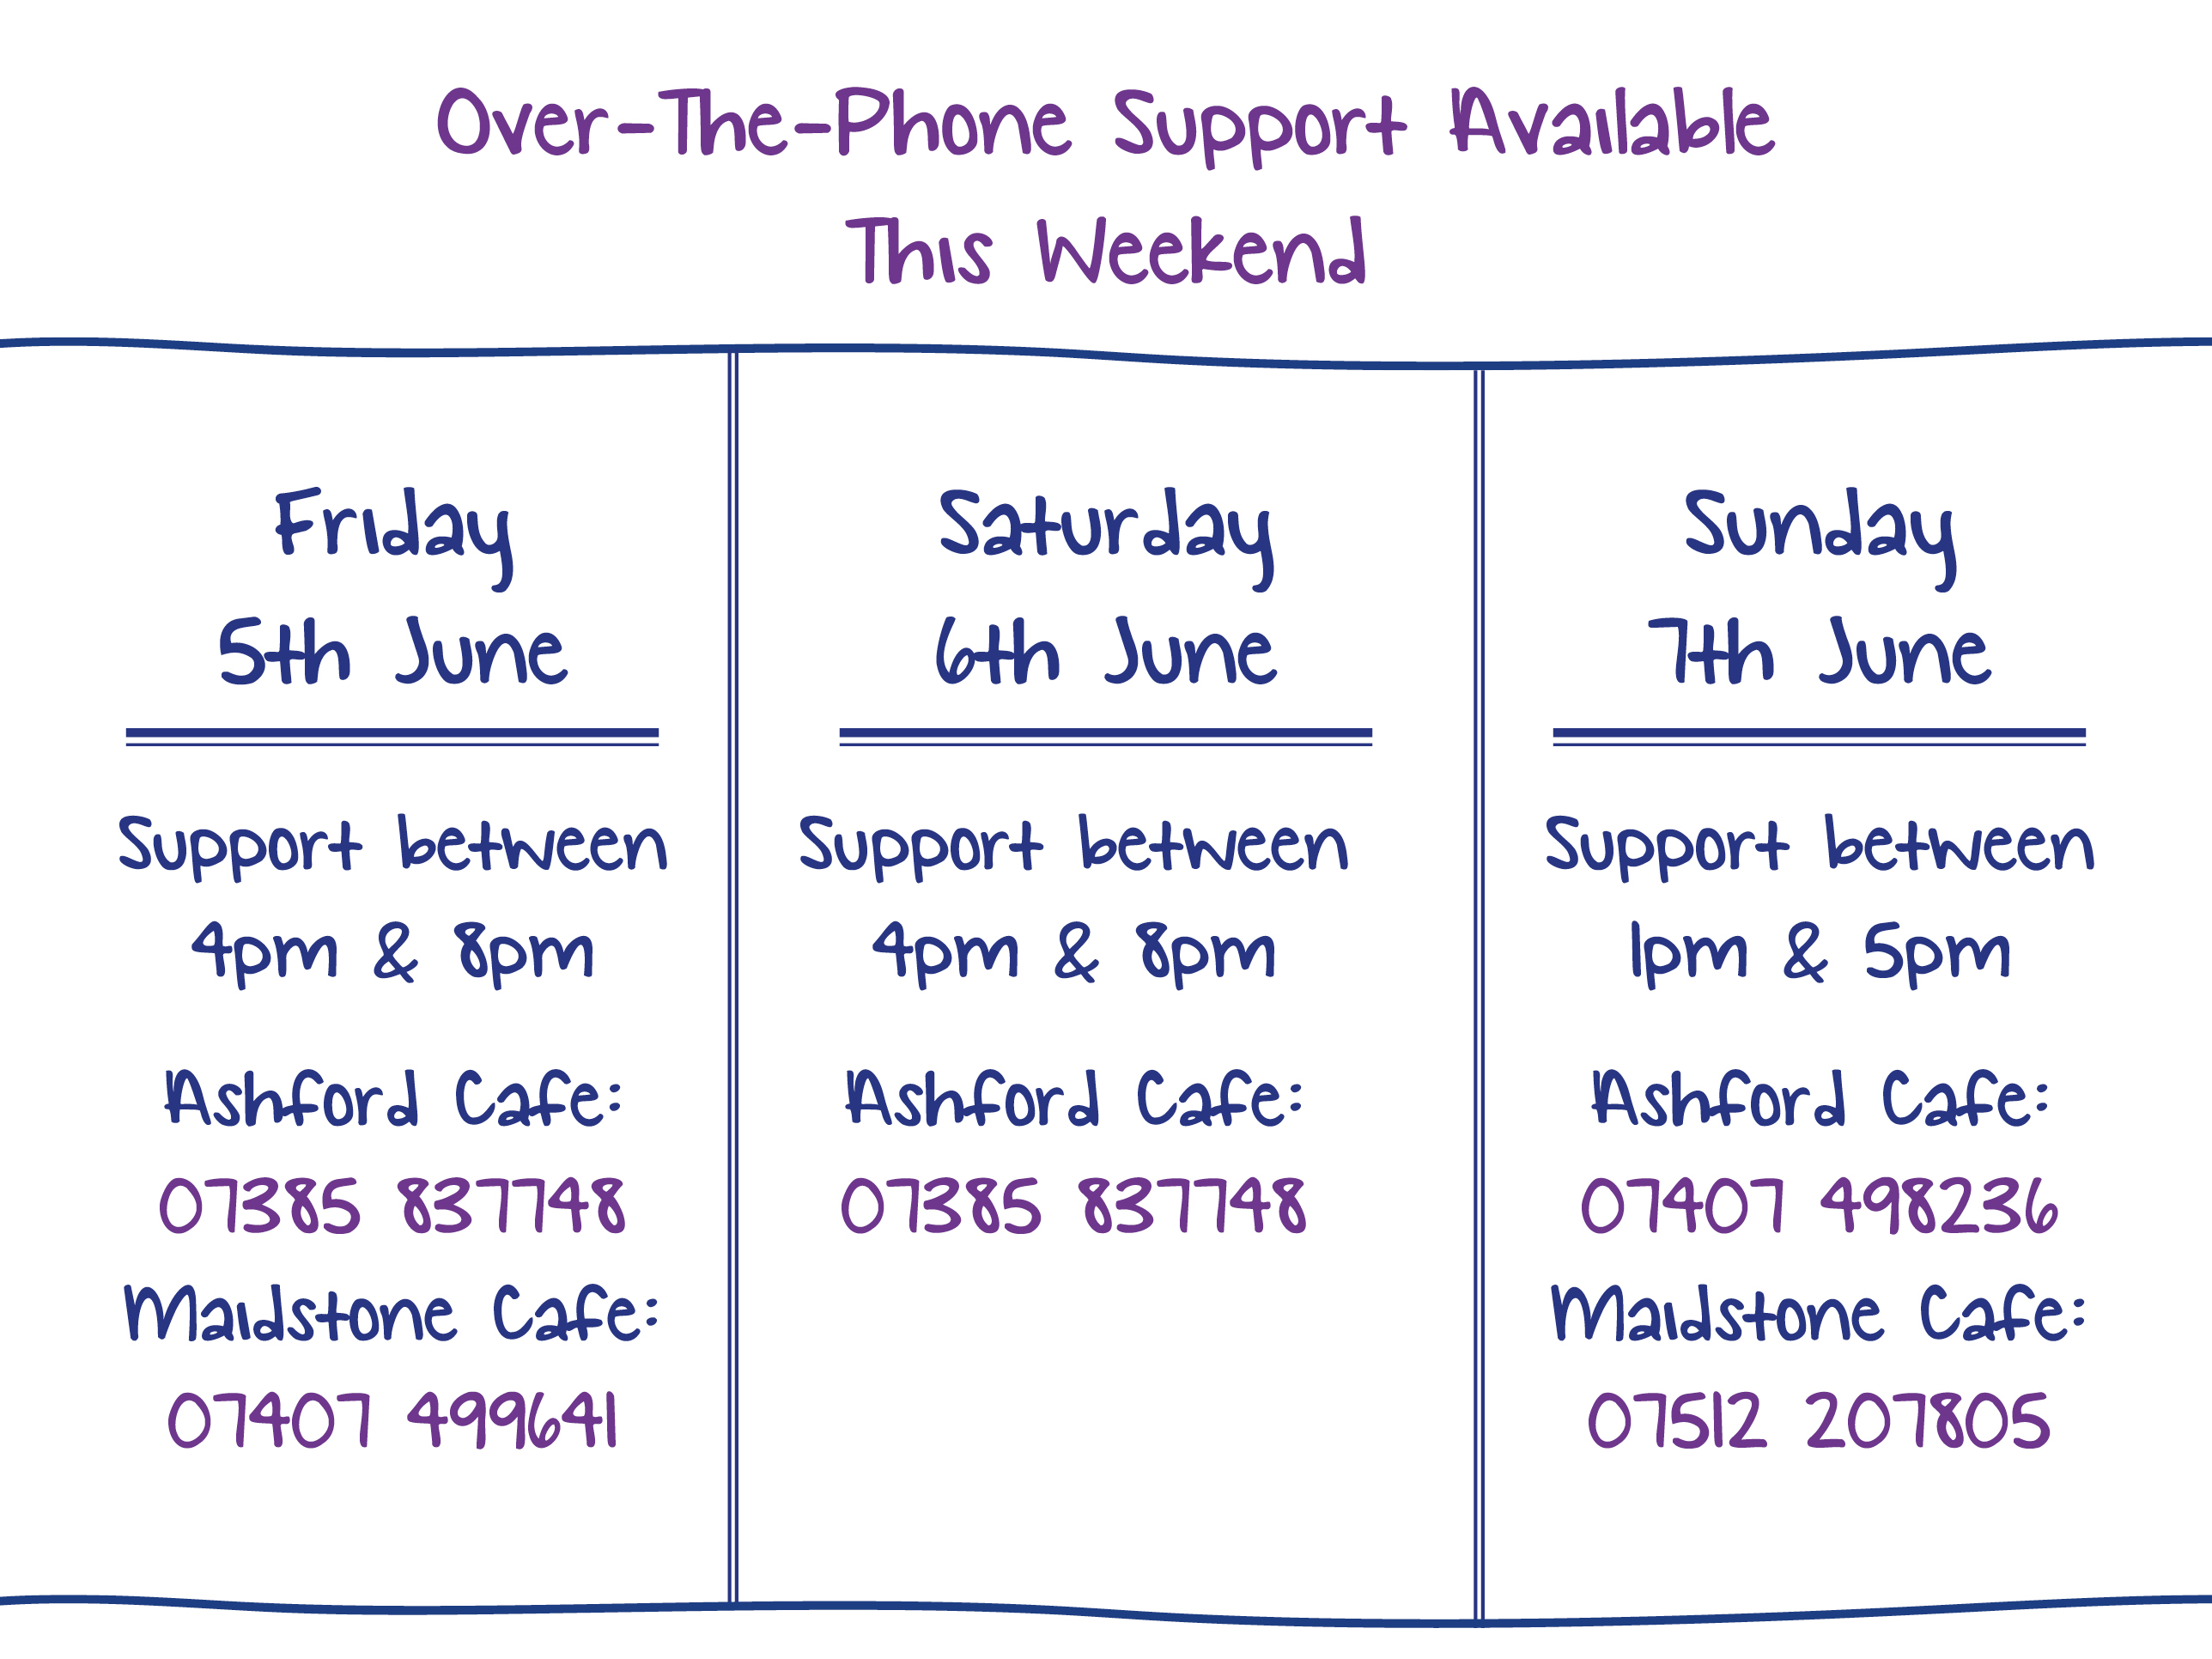 Over-The-Phone Support Available This Weekend. Friday 5th June. Support between 4pm & 8pm Ashford Cafe: 07385 837748 Maidstone Cafe: 07407 499641. Saturday 6th June. Support between 4pm & 8pm Ashford Cafe: 07385 837748. Sunday 7th June. Support between 1pm & 5pm Ashford Cafe: 07407 498236 Maidstone Cafe: 07512 207805